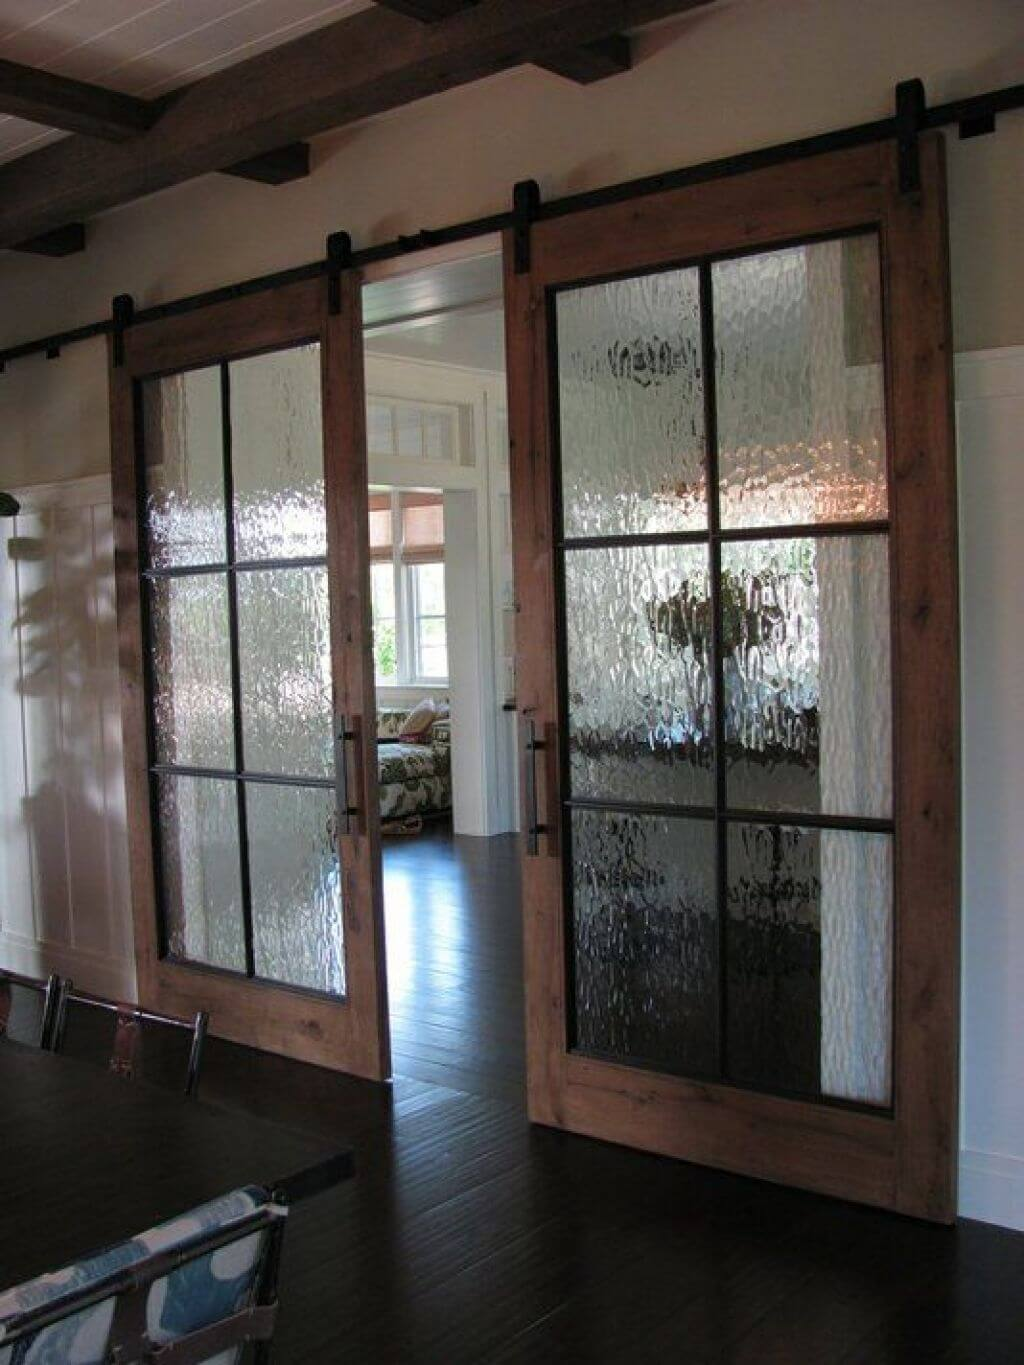 29 Best Sliding Barn Door Ideas And Designs For 2018. Black Sliding Glass Doors. Better Life Technology Garage Floor Covering. Baby Garage Sale. Commercial Glass Door Repair. Tornado Shelter Doors. Garage Door Paint Designs. Bike Holder For Garage. Garage Heaters Natural Gas Ventless